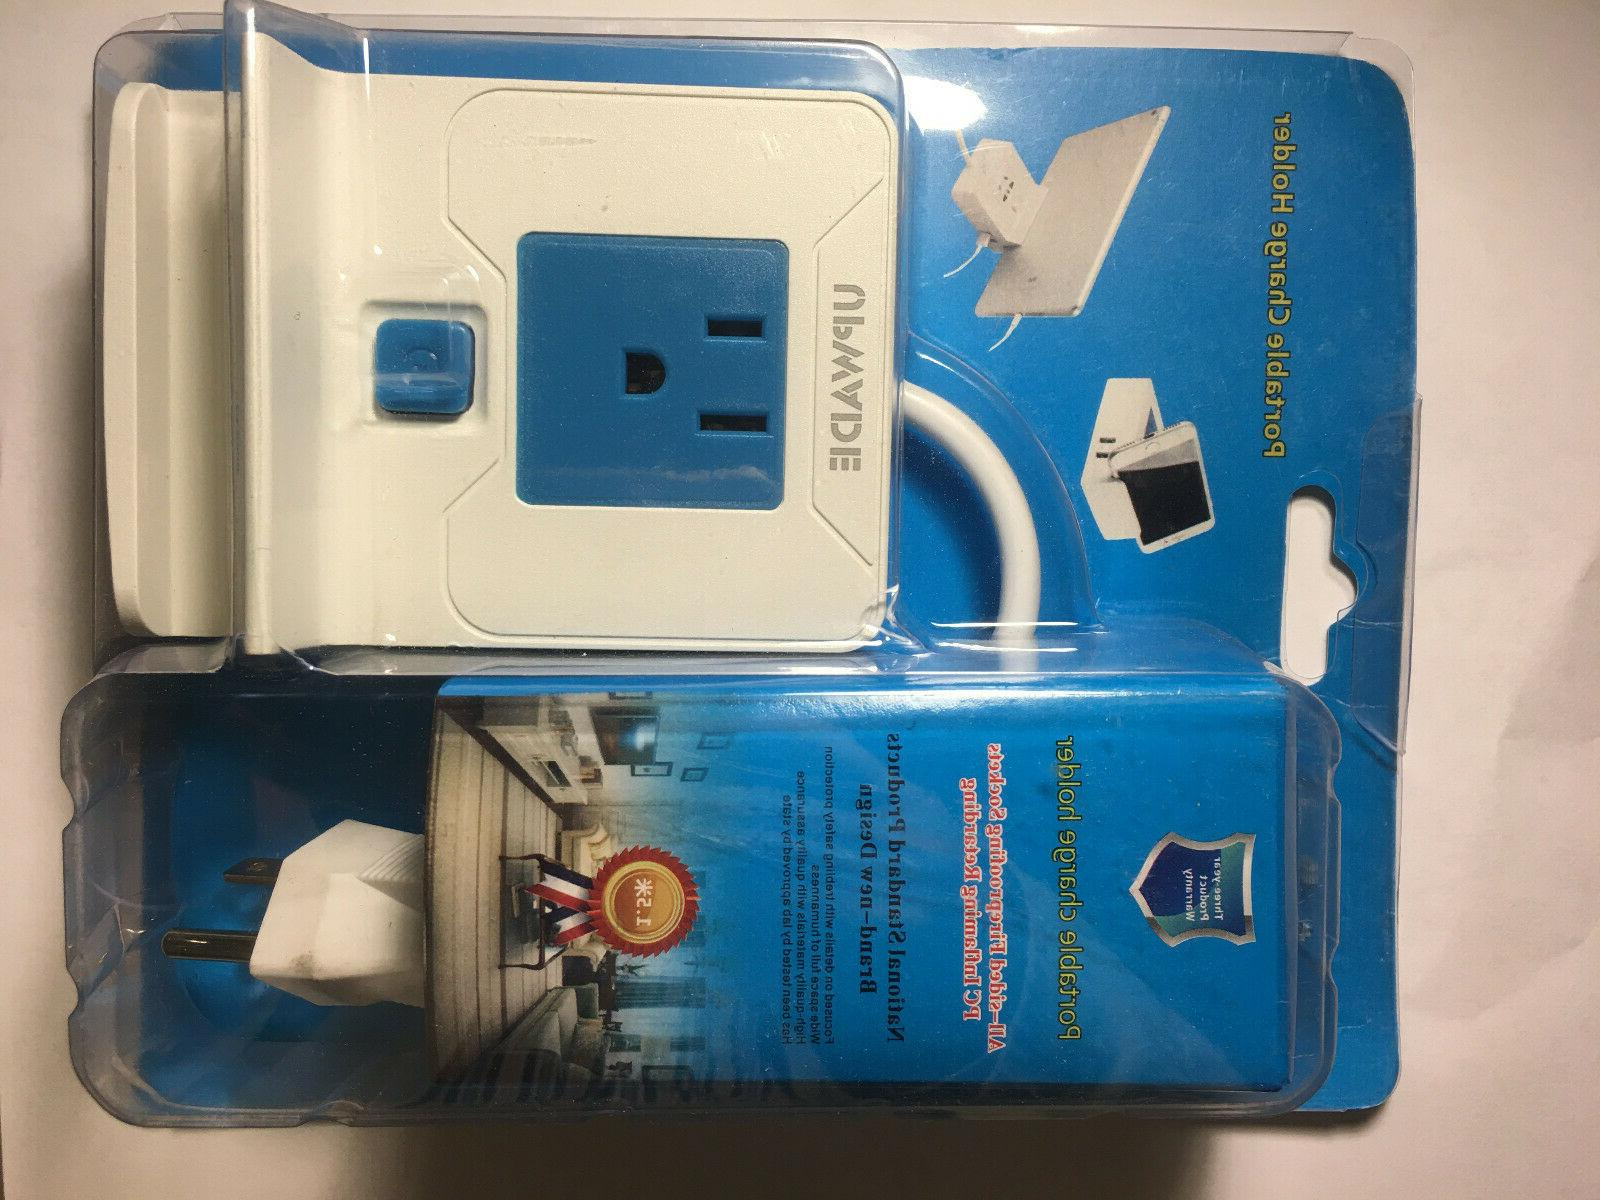 2 Dock Outlet-Tablet/iPAD/Phone, SELLER